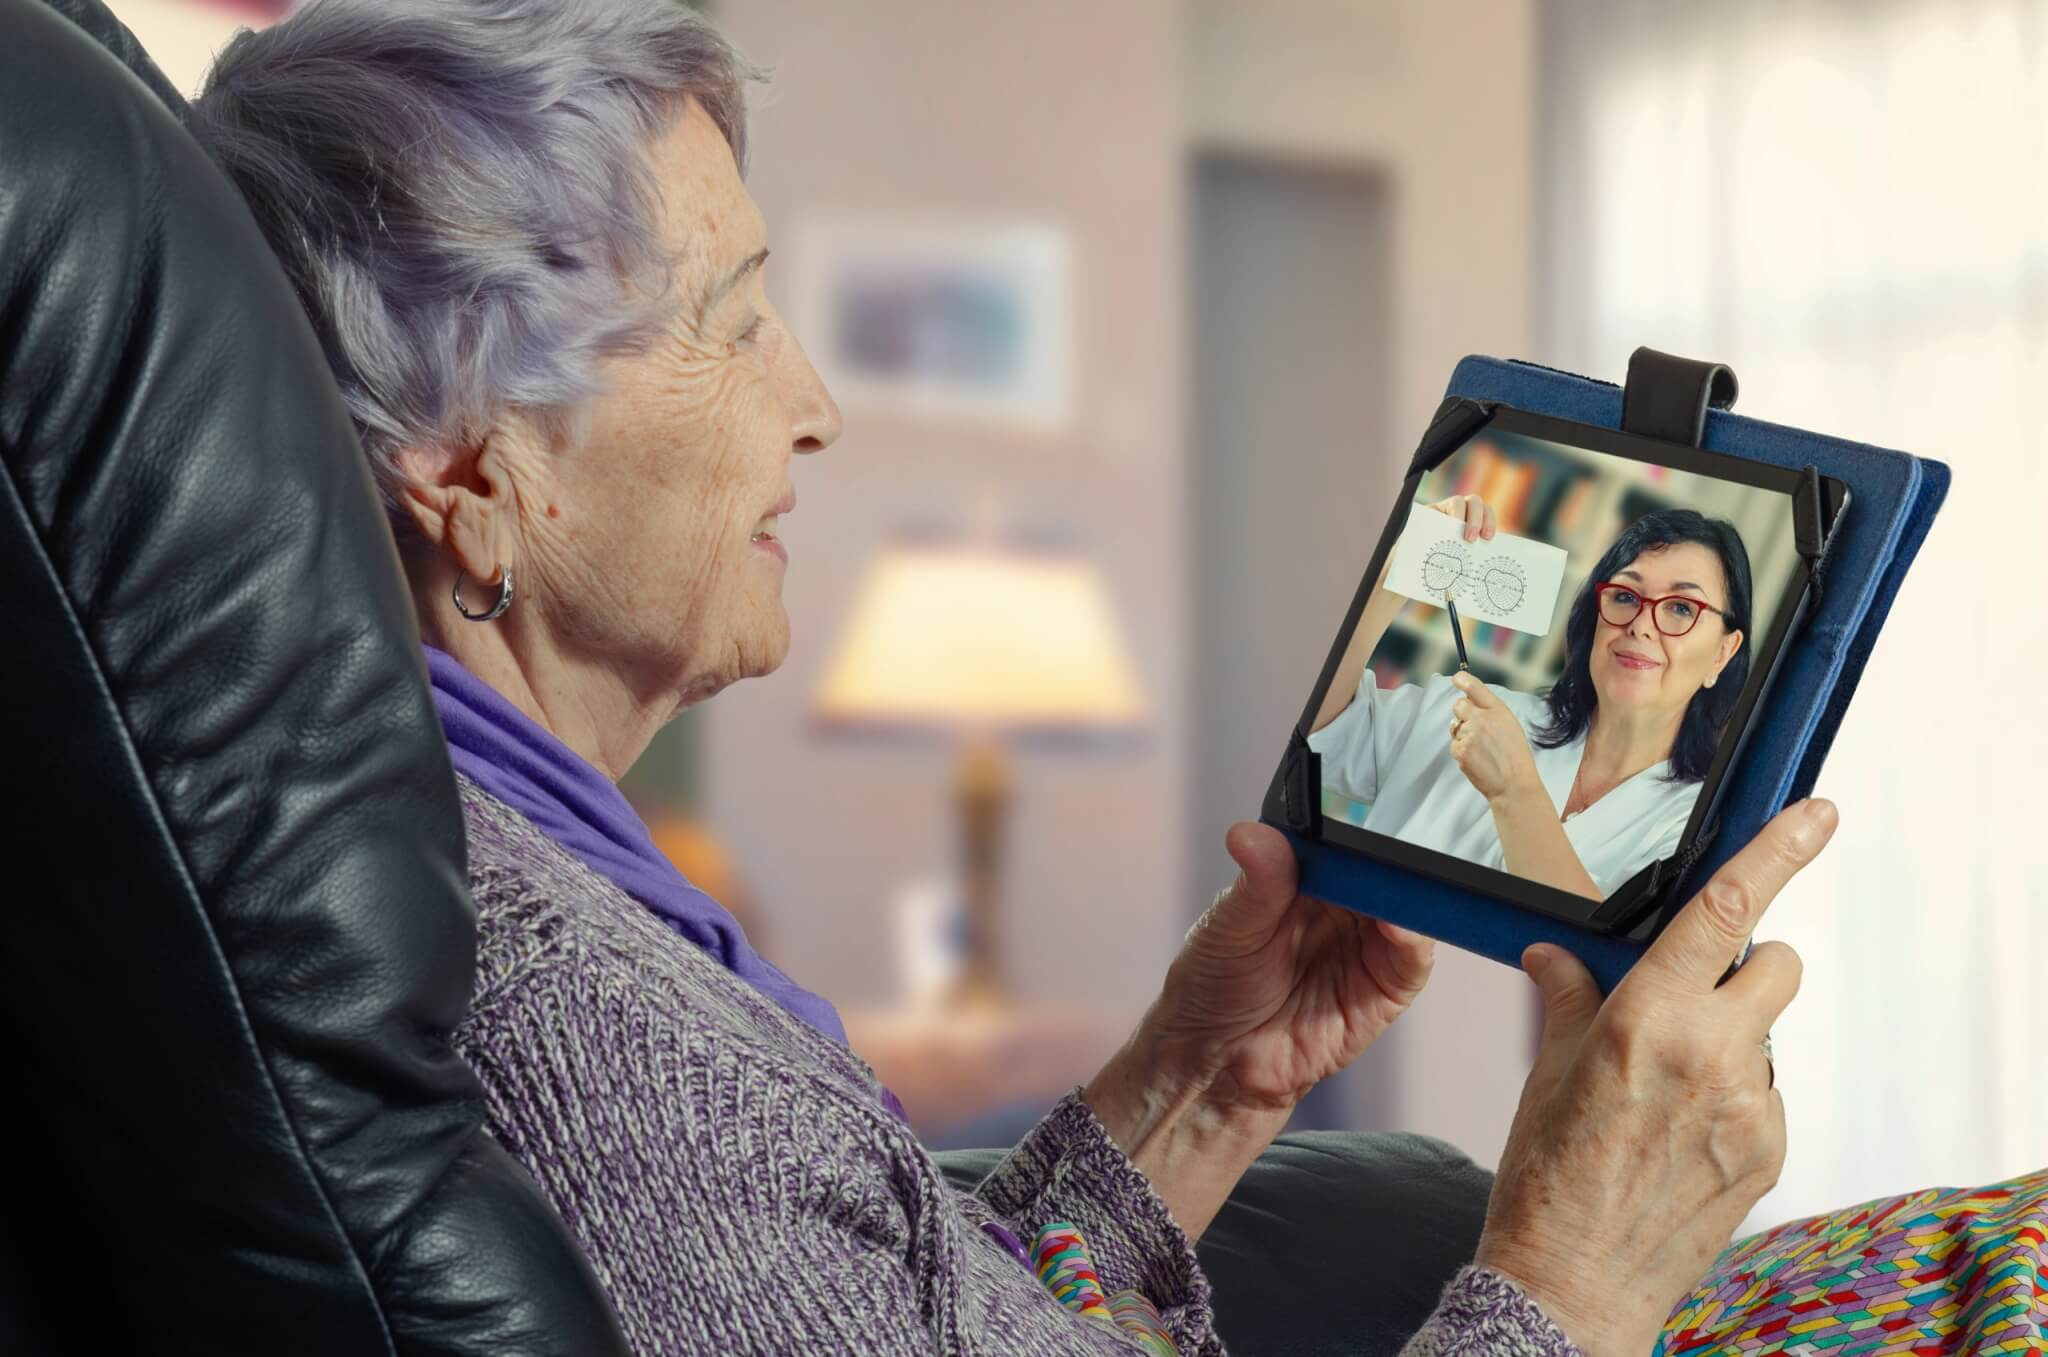 Patients with chronic diseases prefer telemedicine